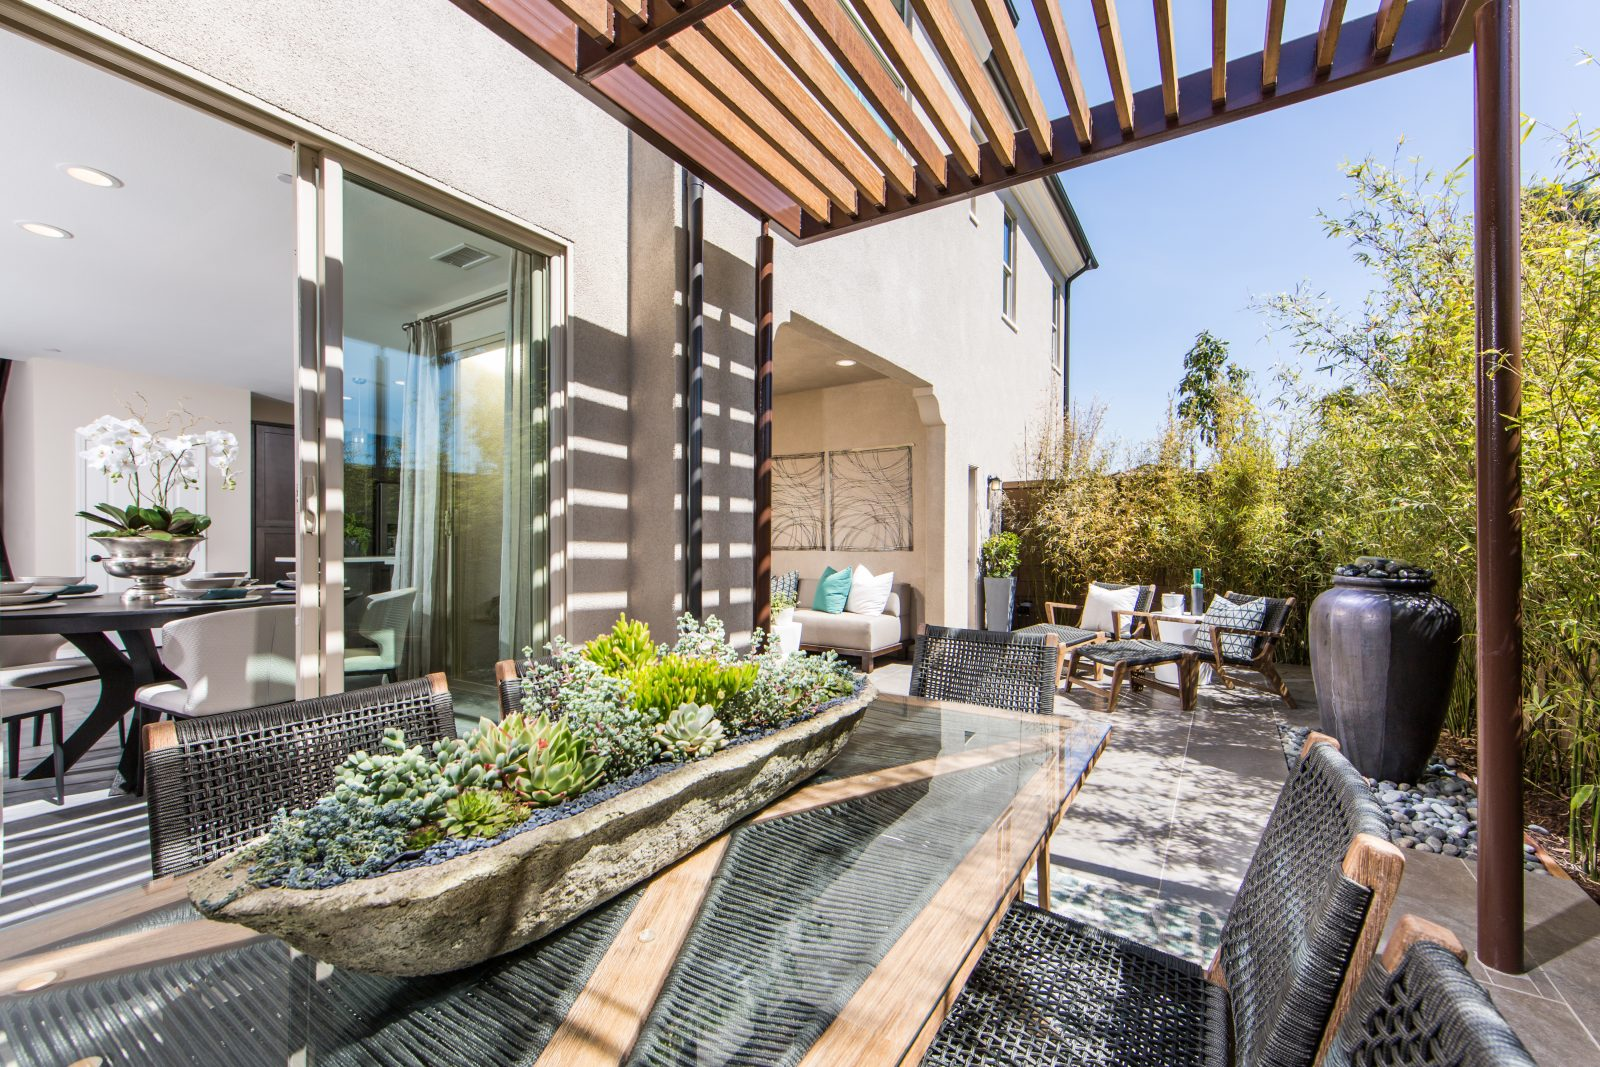 Private Patio with Outdoor Room in Irvine Townhomes for Sale